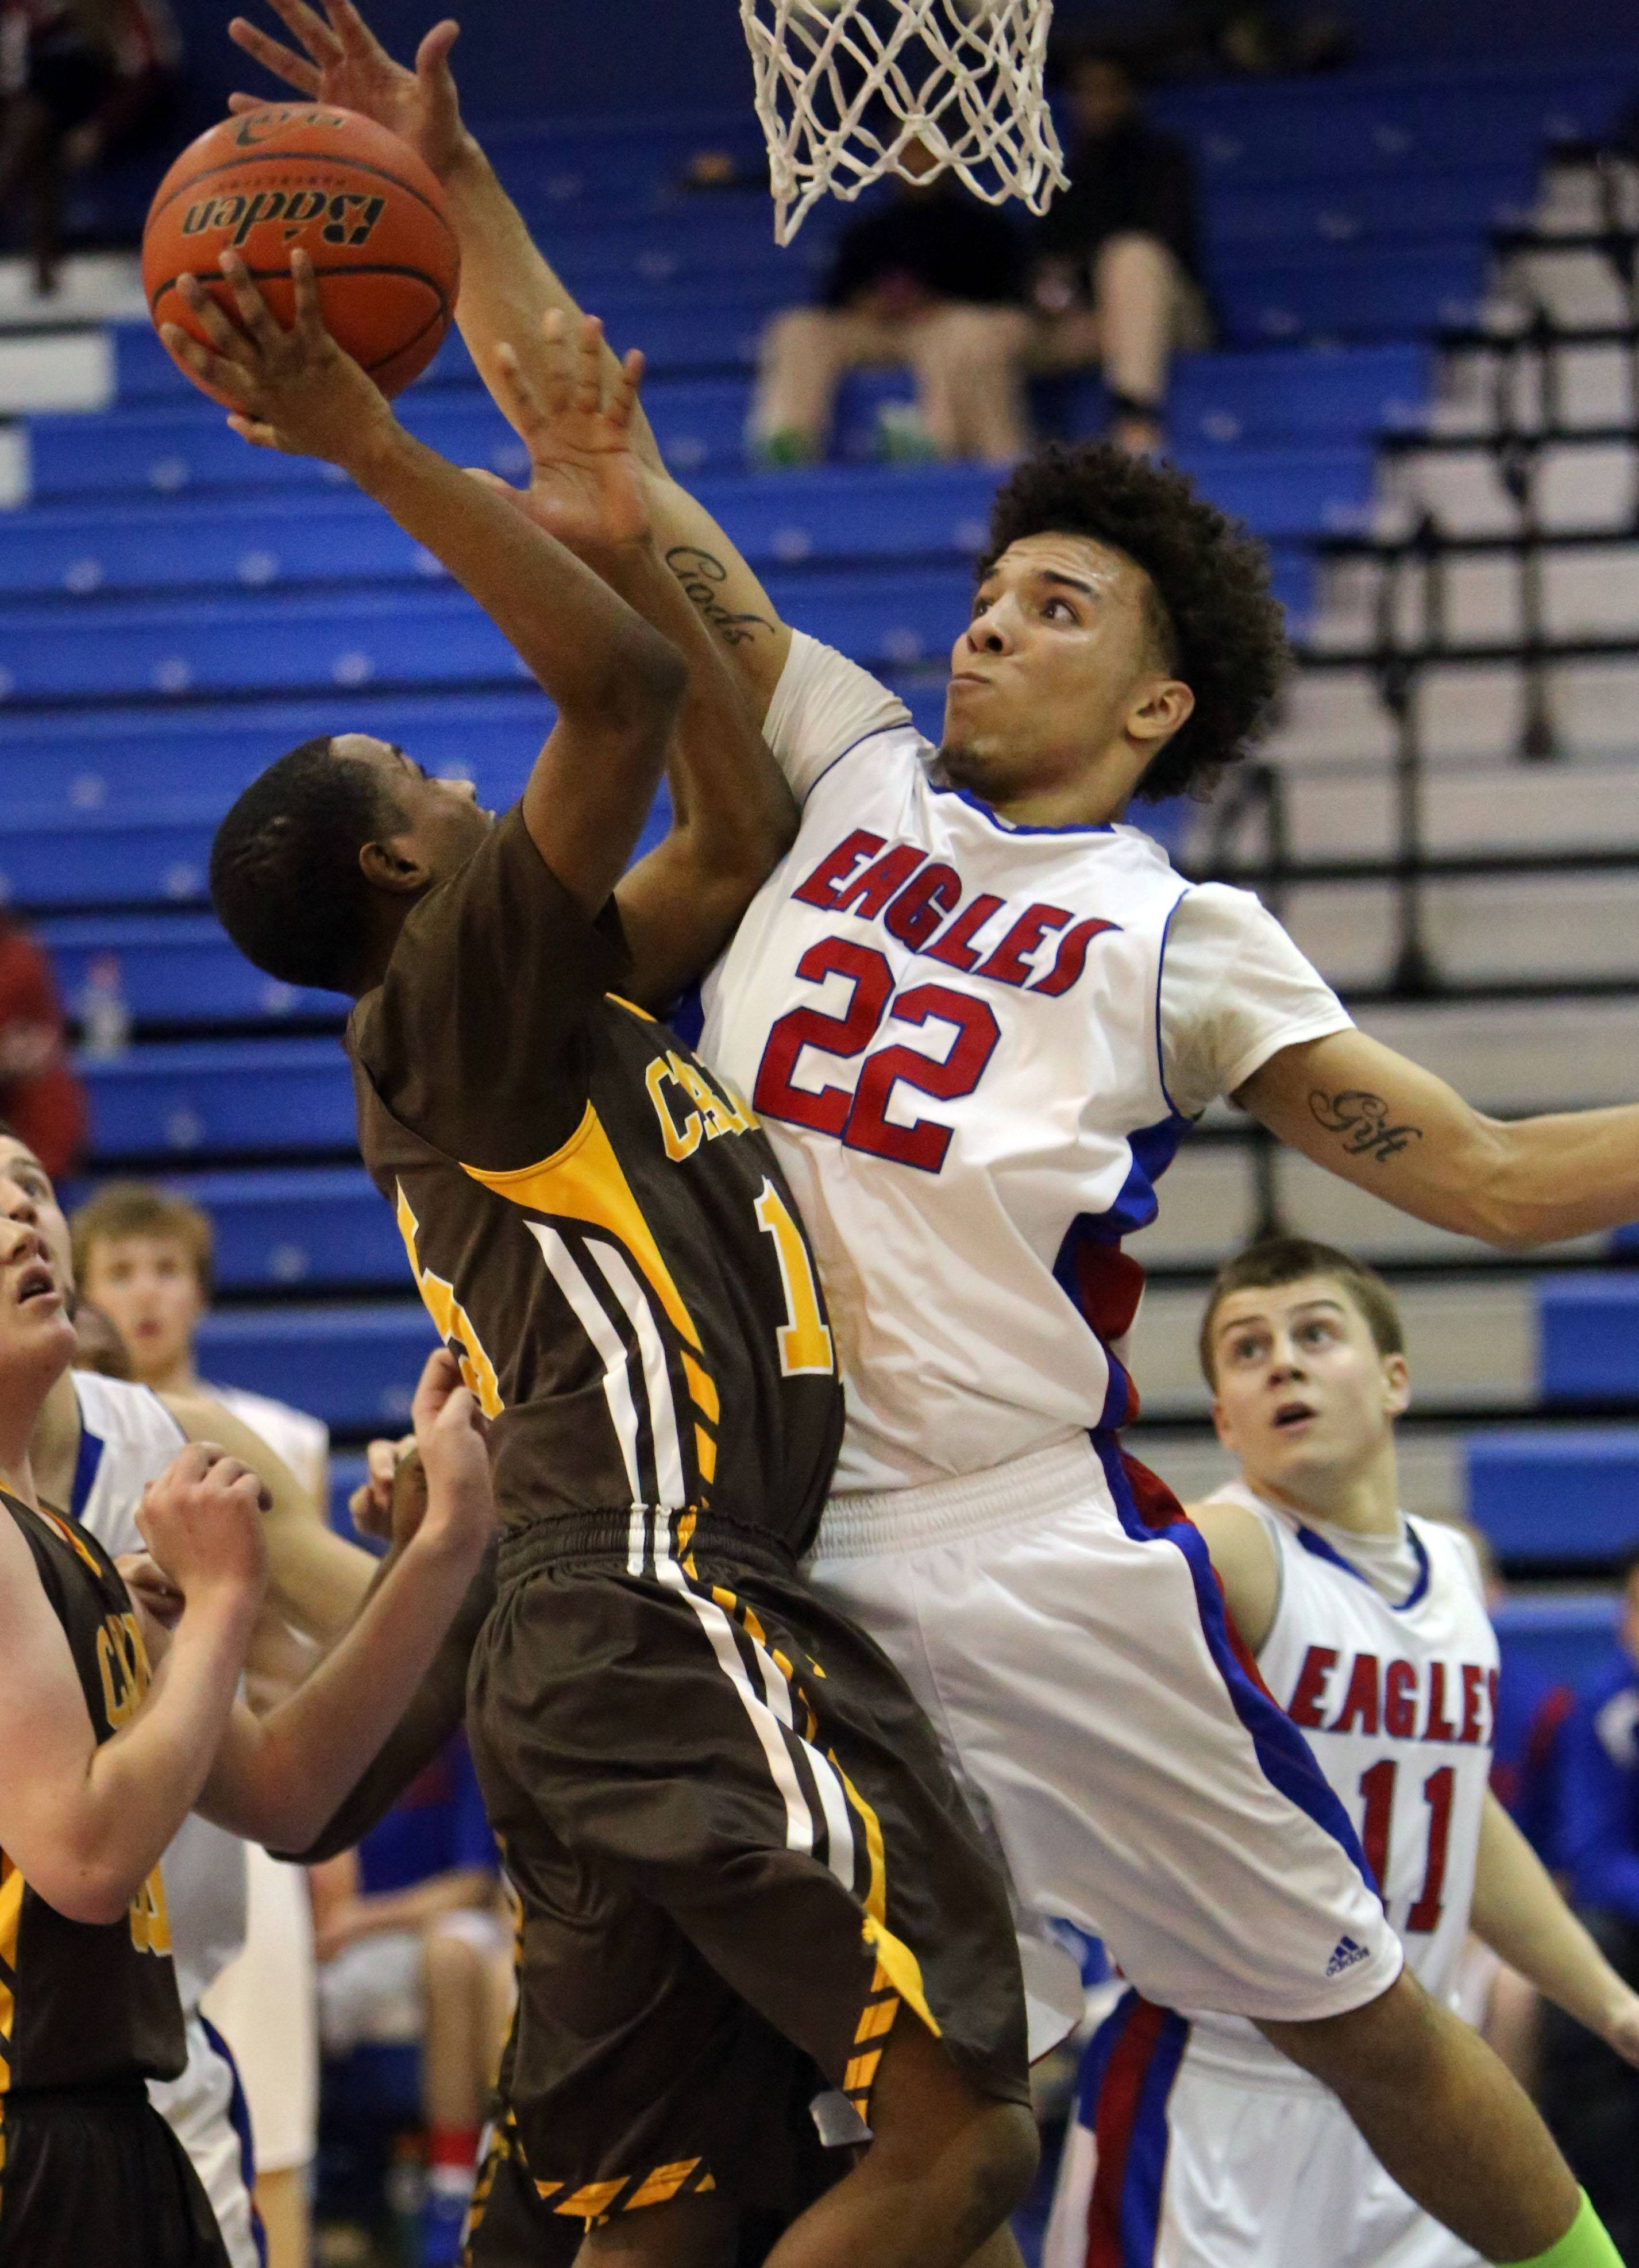 Lakes' Tramone Hudson, right blocks the shot of Carmel's Shareif Besler-Bailey on Monday night at Lakes.